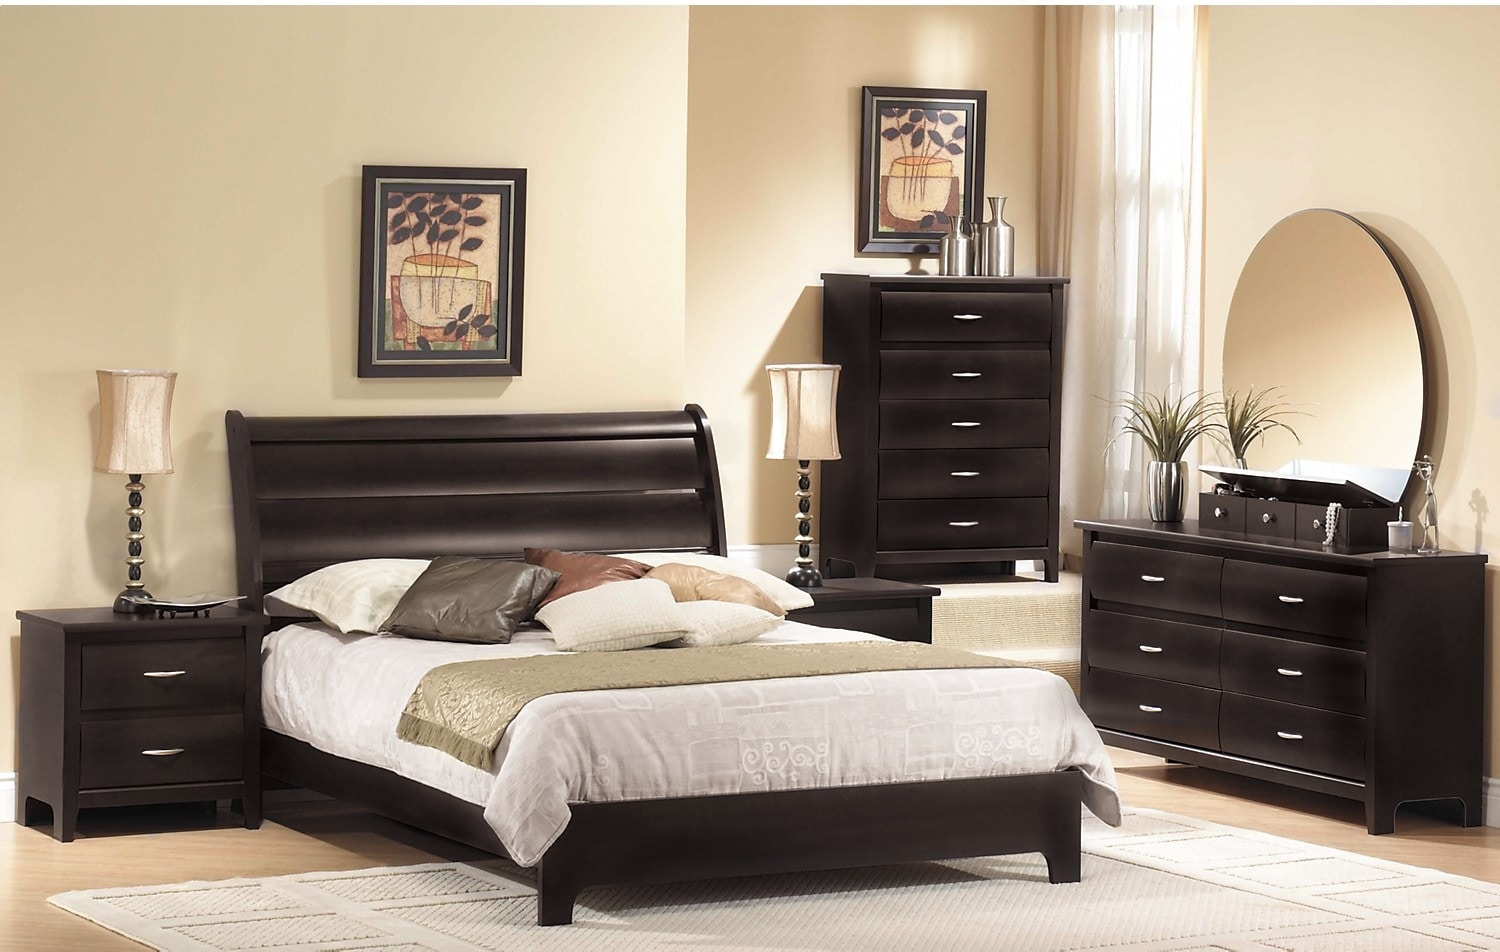 Bedroom Furniture - Mocha 5-Piece Queen Bedroom Package